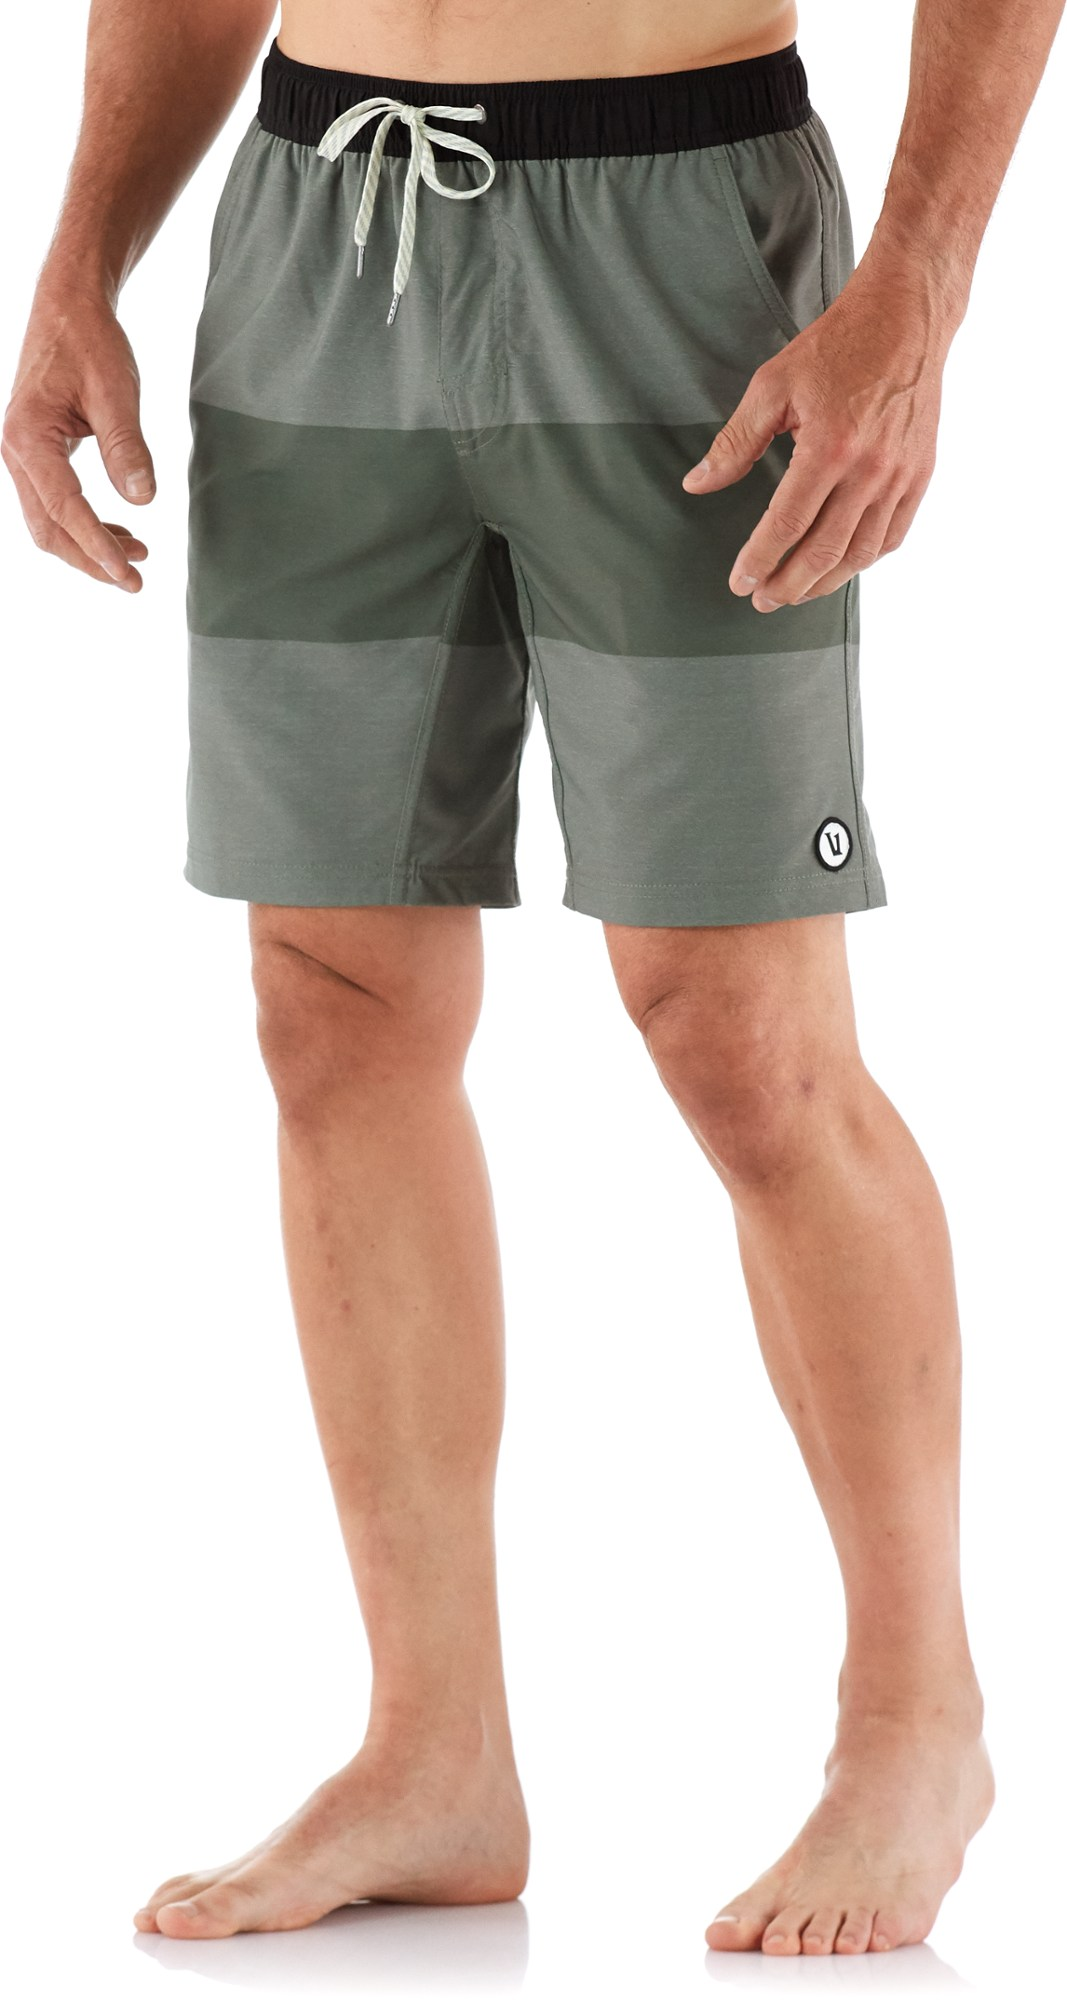 Vuori Kore Shorts - Men's 8